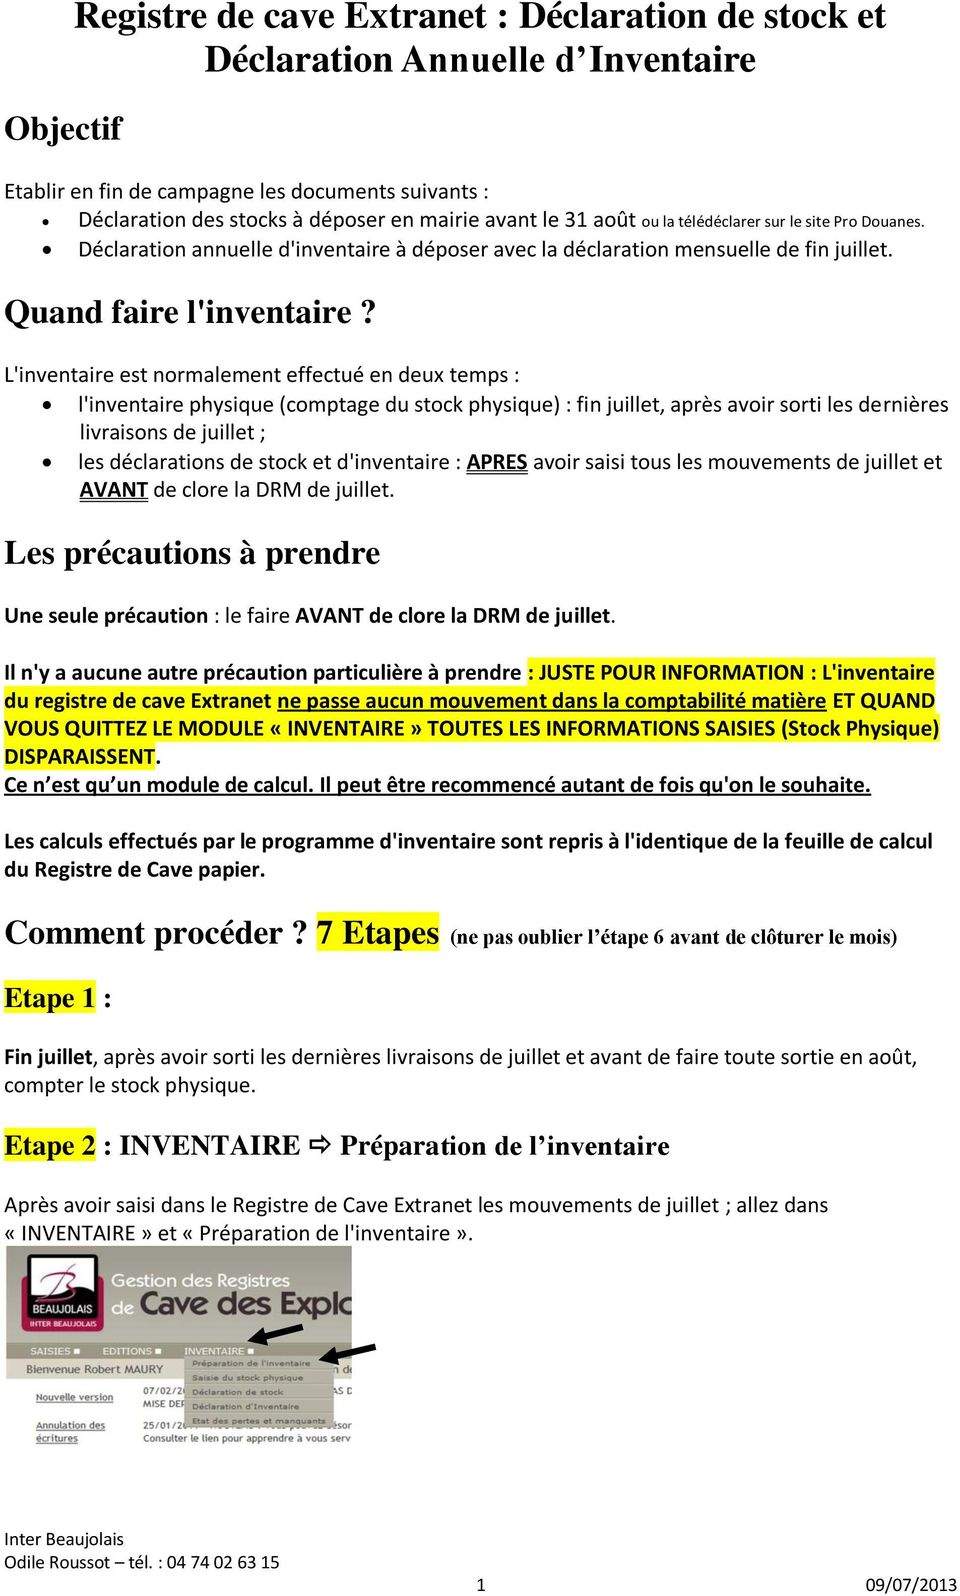 Registre De Cave Extranet Declaration De Stock Et Declaration